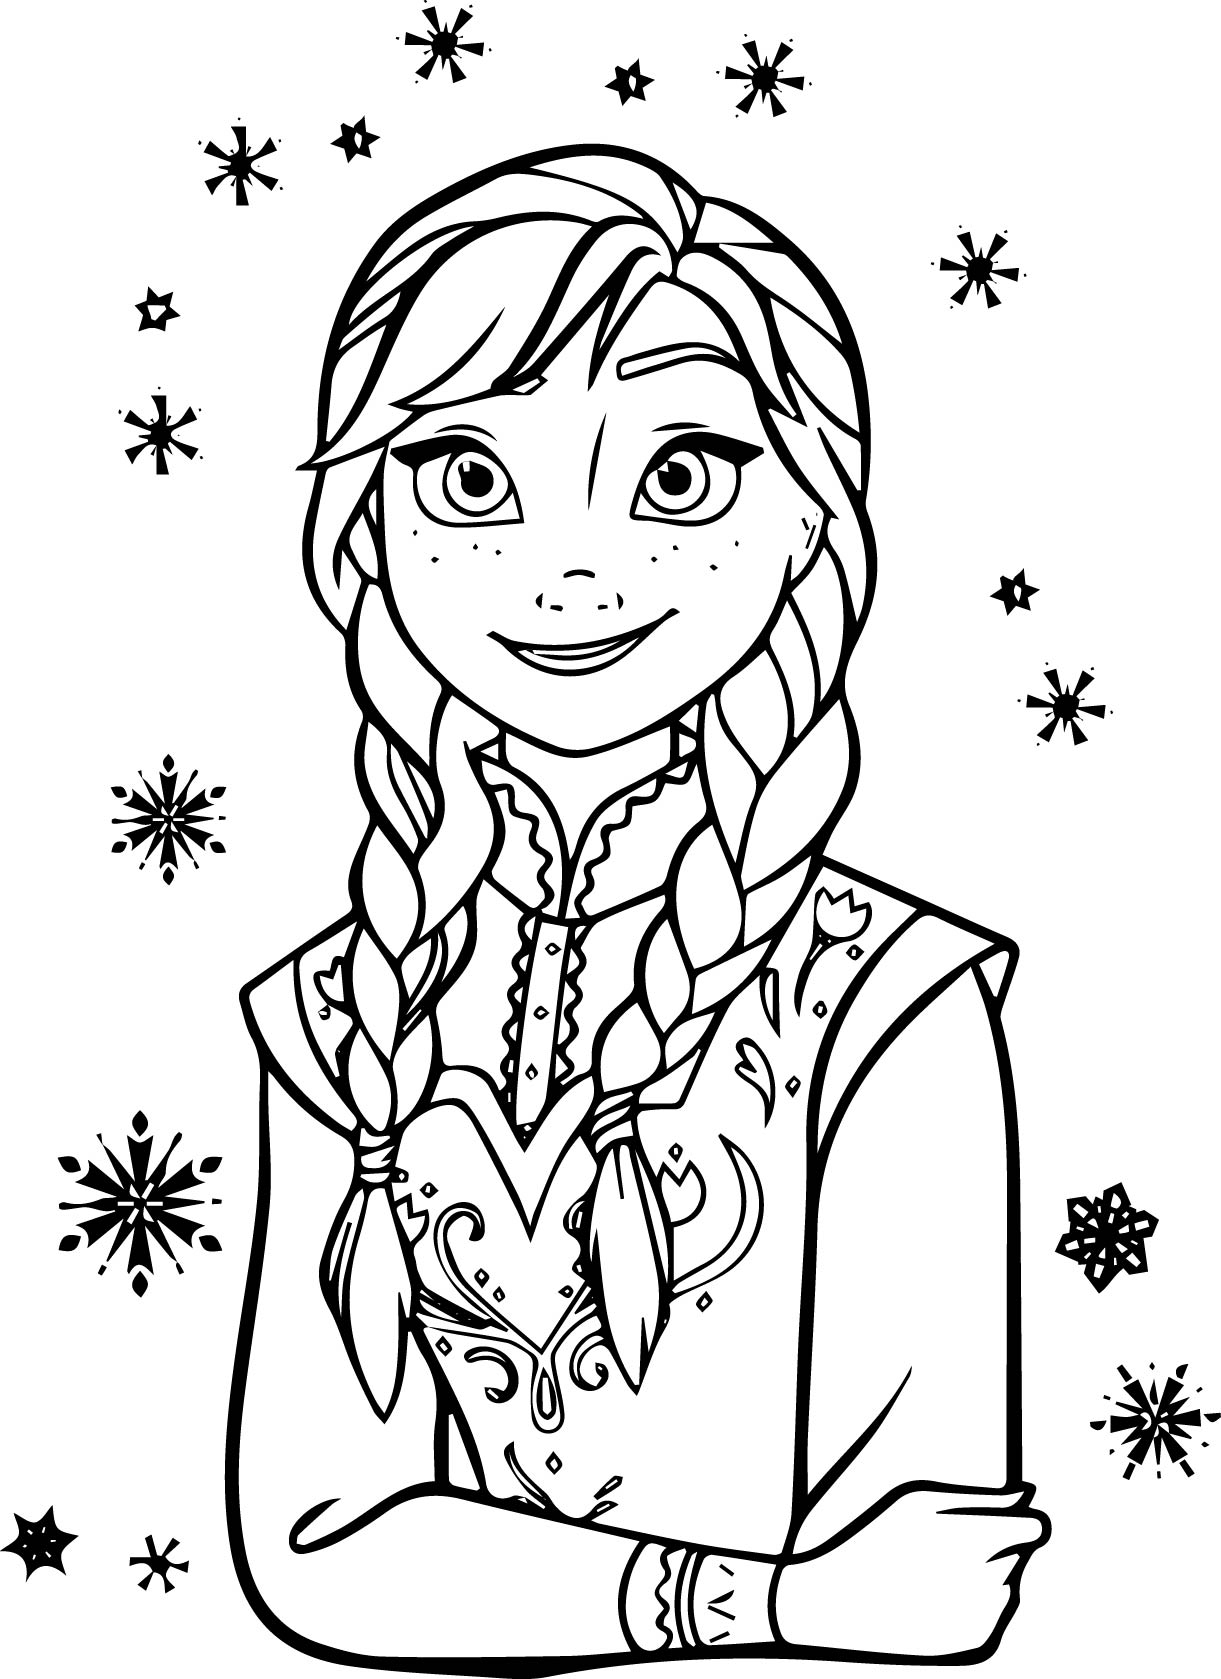 frozen coloring images frozen free to color for children frozen kids coloring pages images frozen coloring